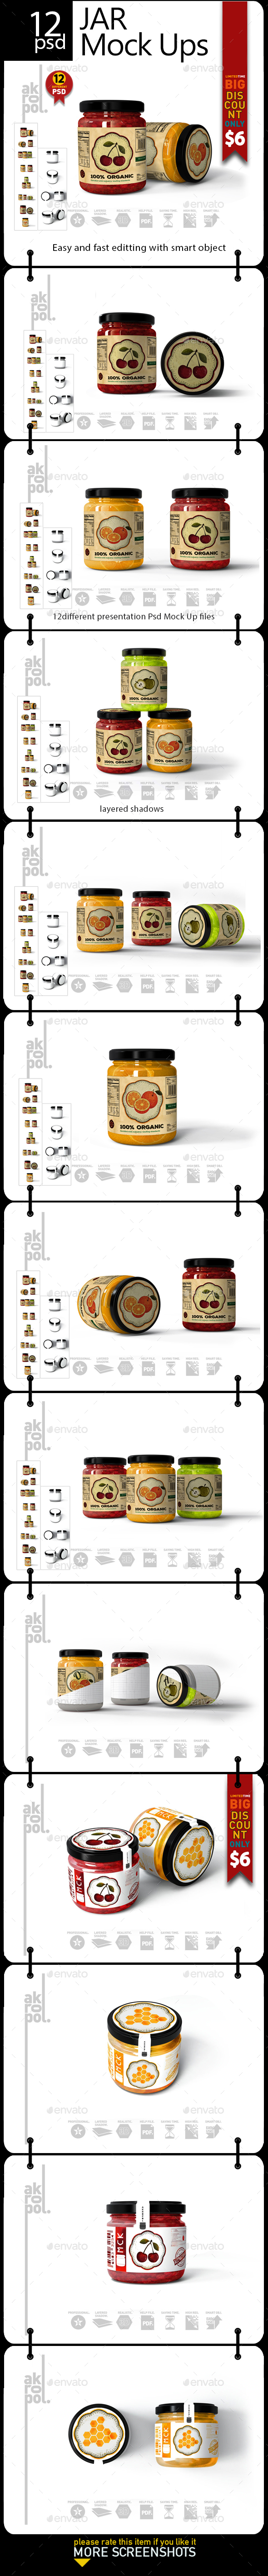 GraphicRiver JAR MOCKUP 21197659